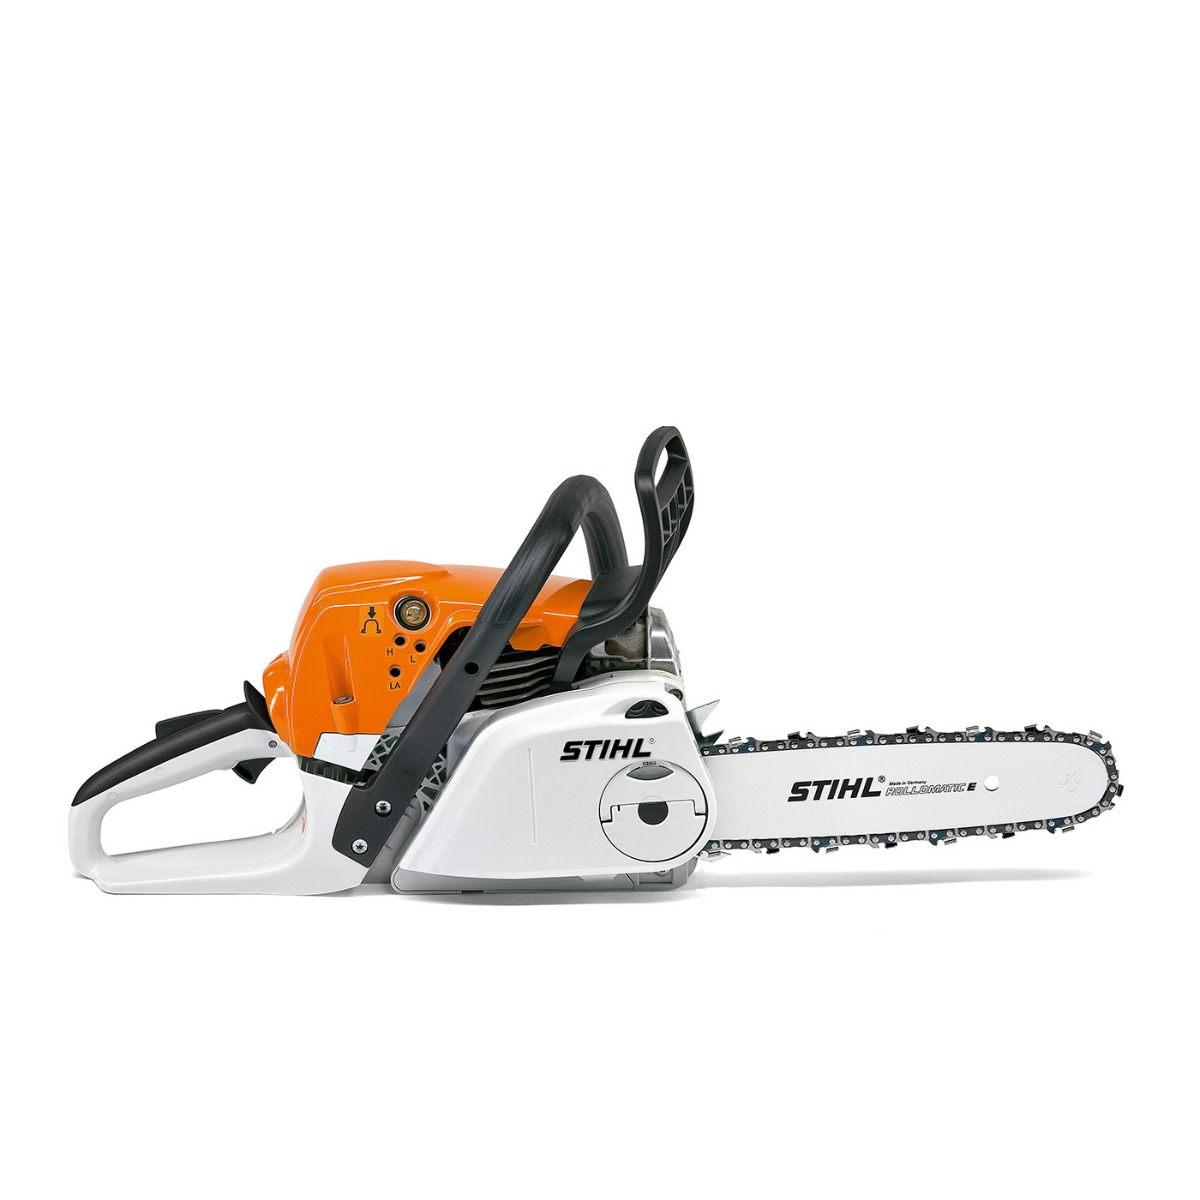 STIHL MS 231 C-BE 16